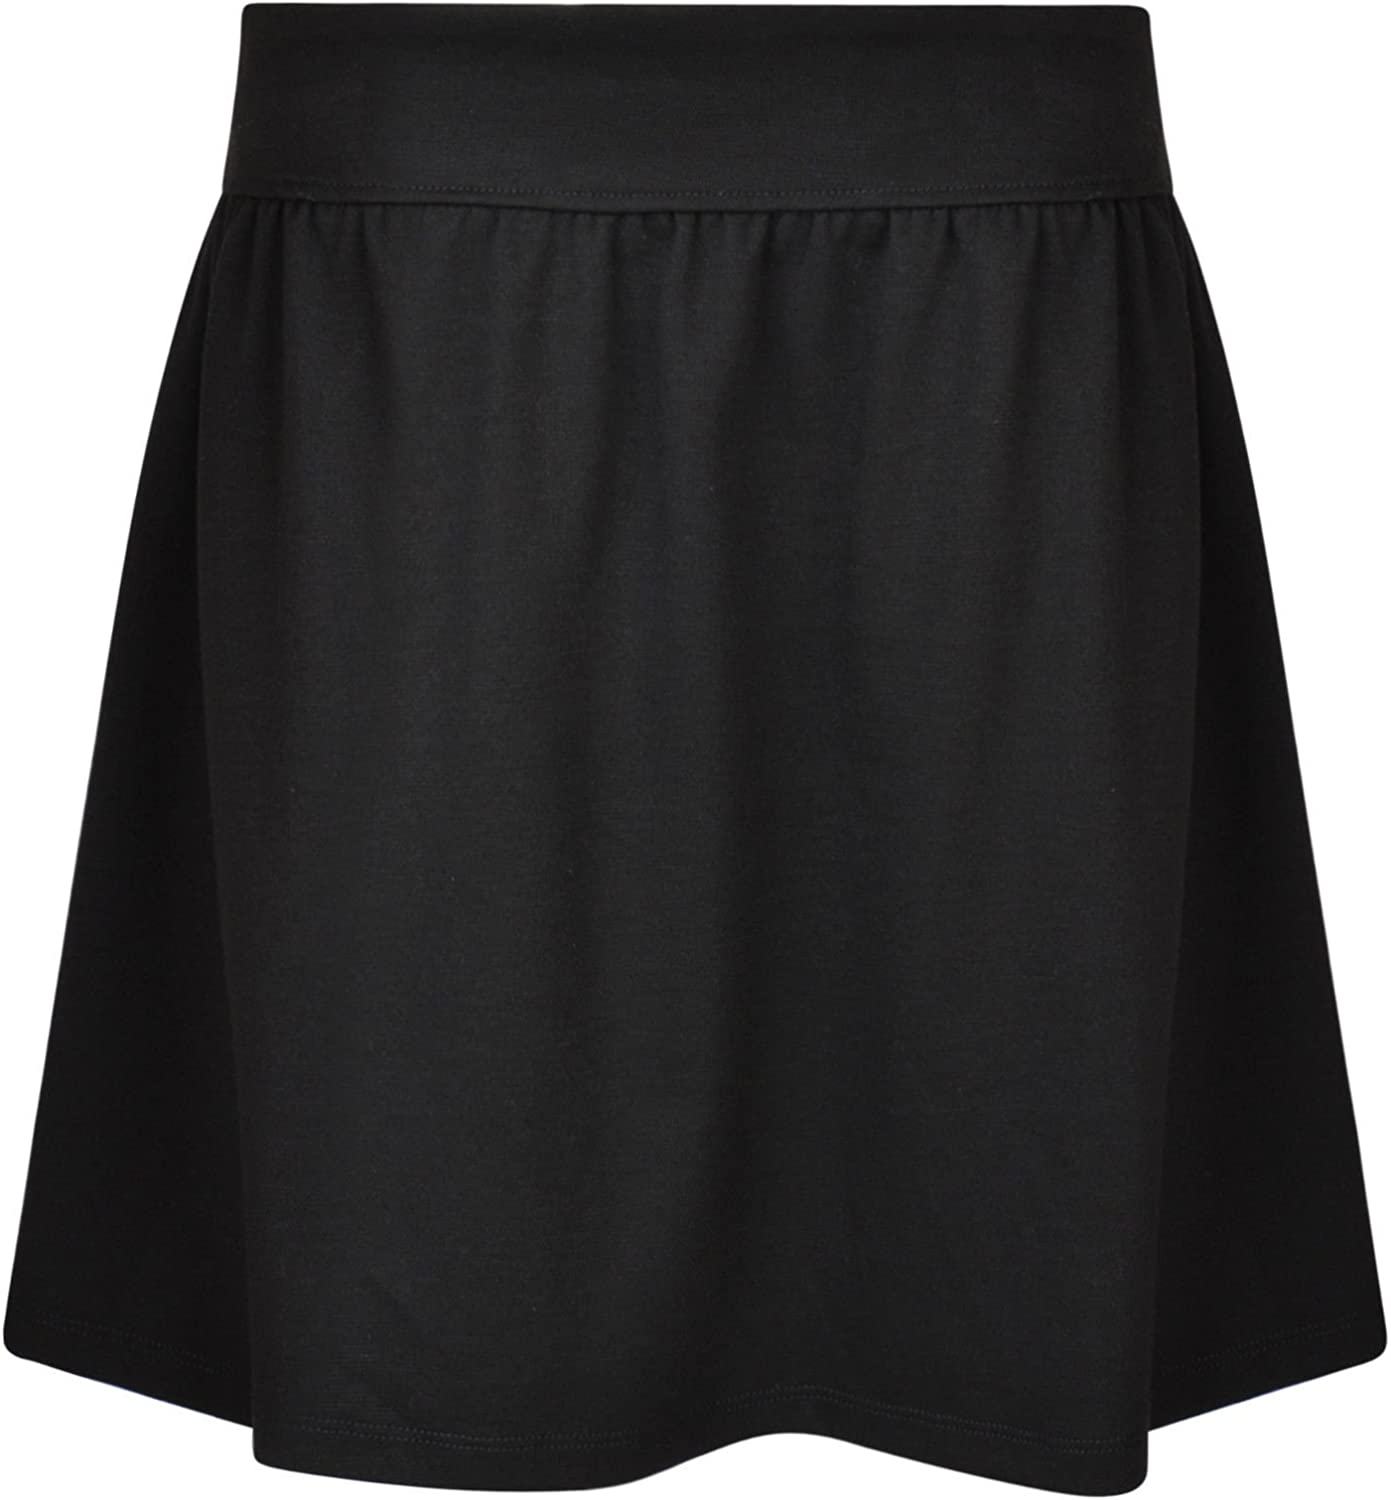 Ex UK Store Girls School Skirt Jersey Stretch Adjustable Waist 3-16 Years